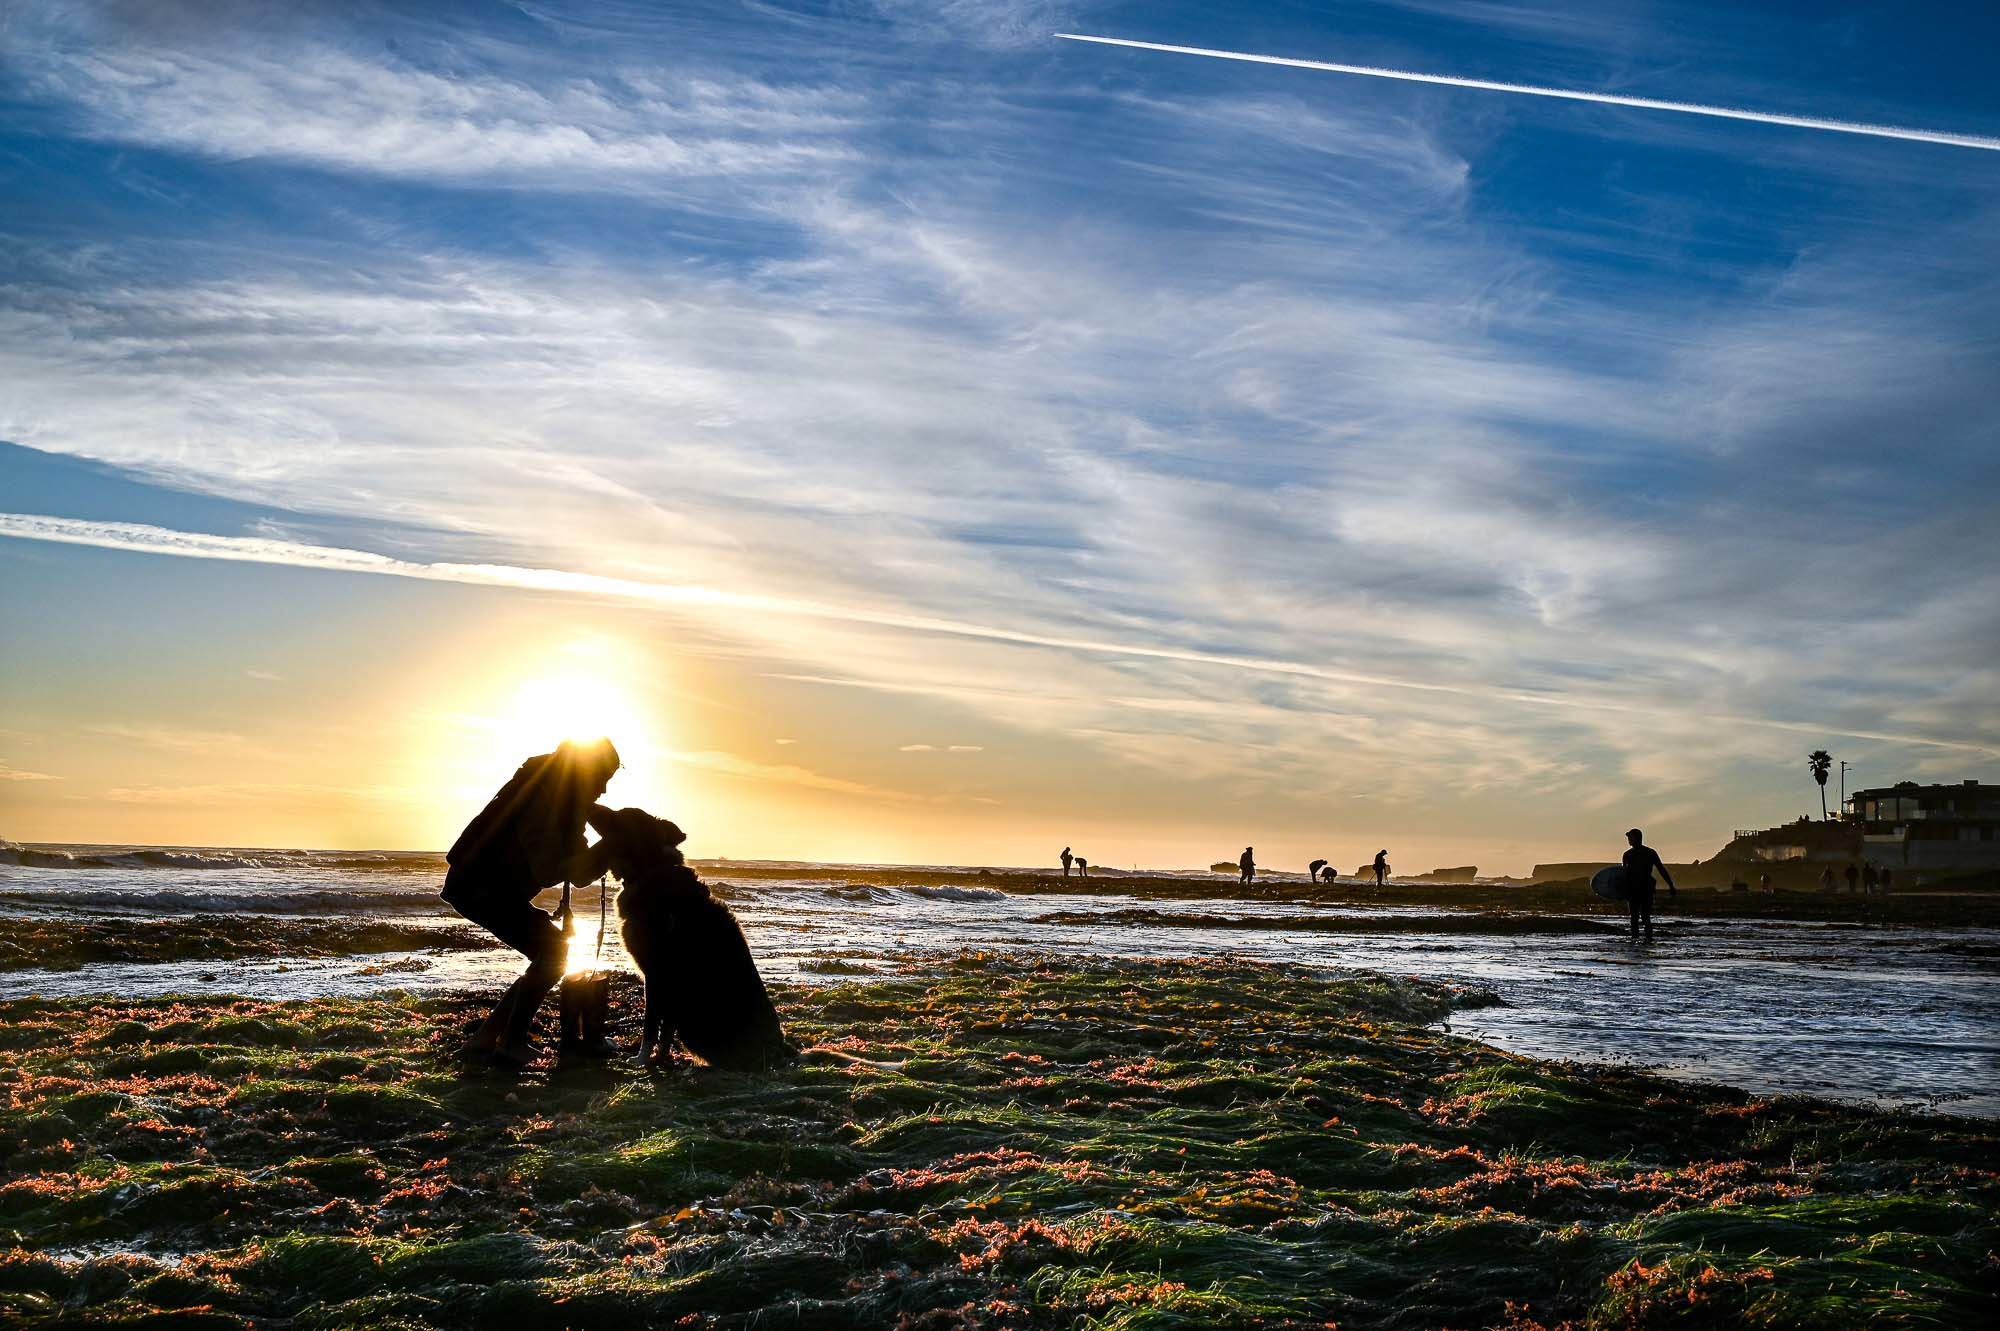 A person and dog are backlit by the setting sun at low tide in the the intertidal zone